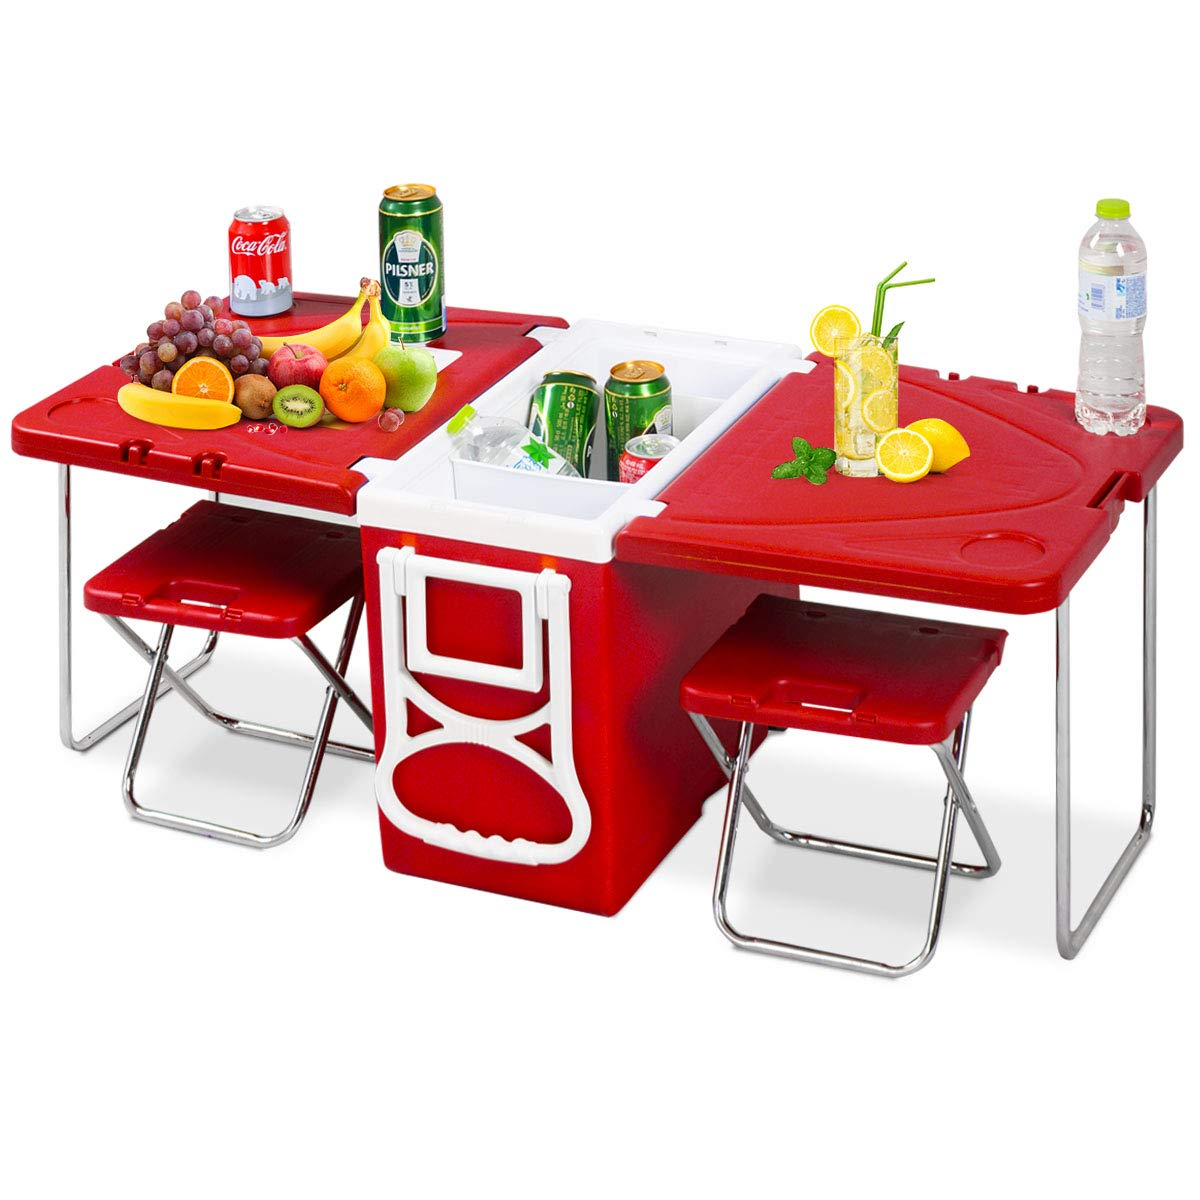 Giantex Multi Function Rolling Cooler Picnic Camping Outdoor w/Table & 2 Chairs Red by Giantex